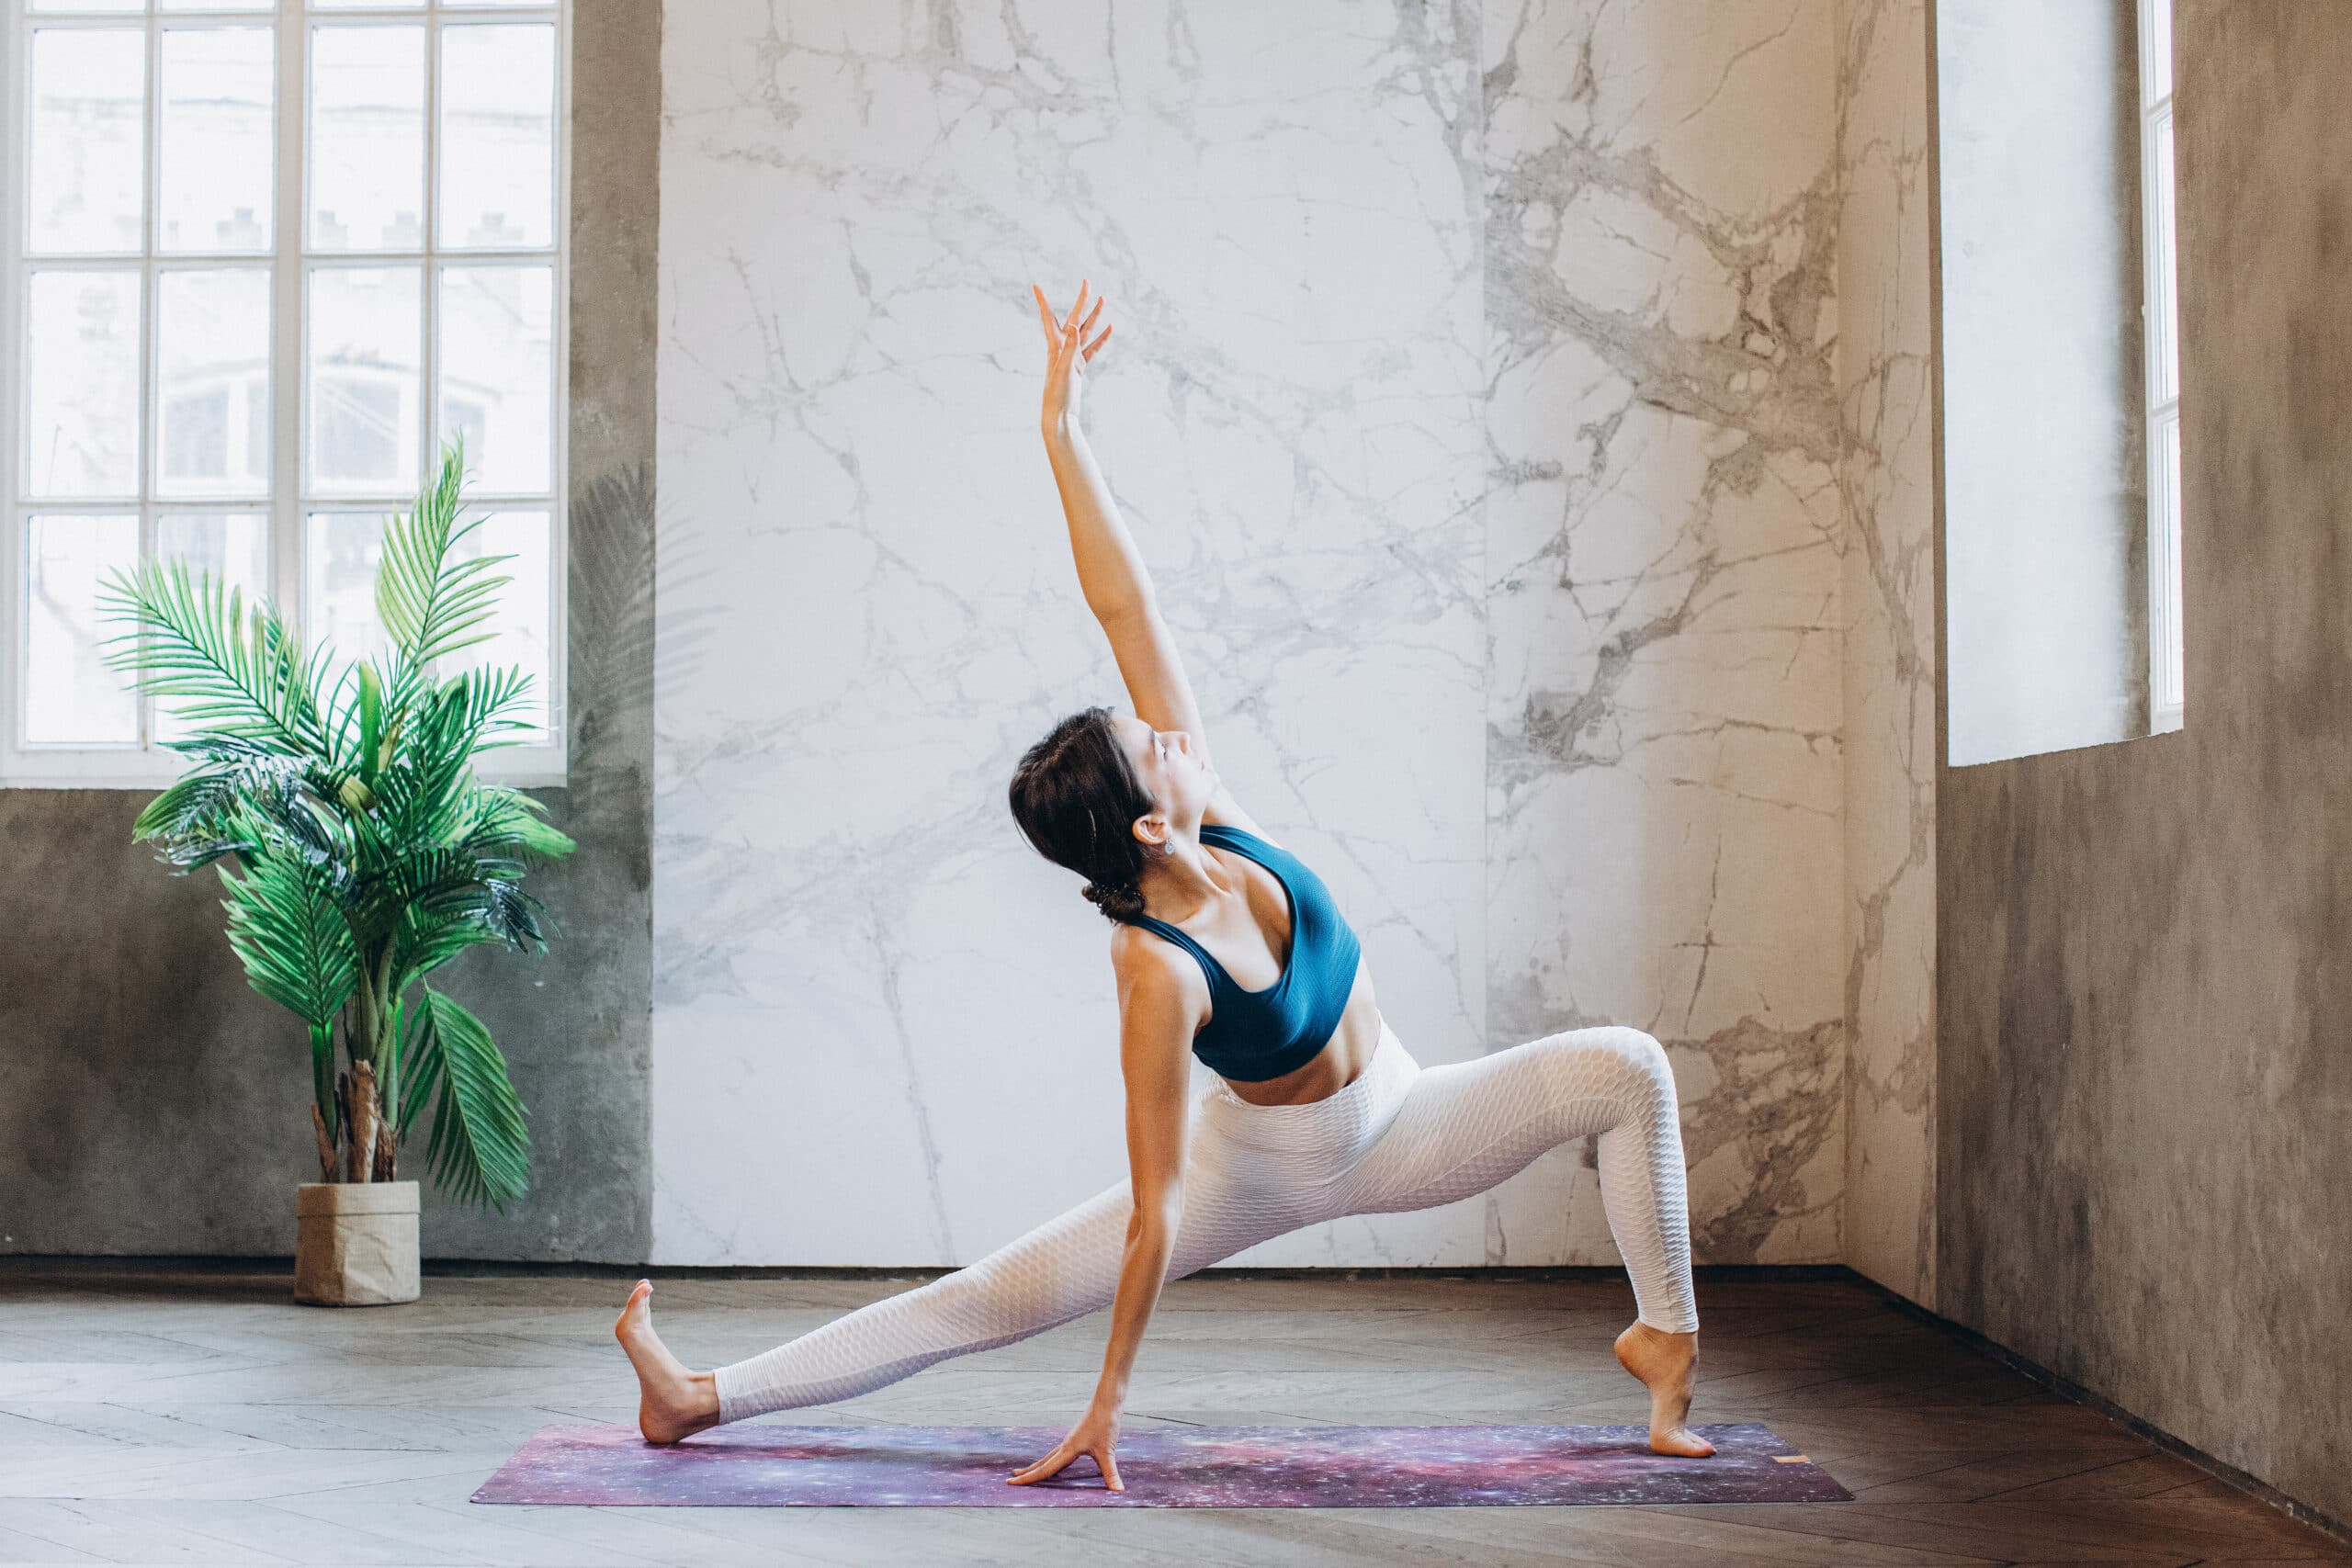 10 Amazing Yoga facts you didn't know